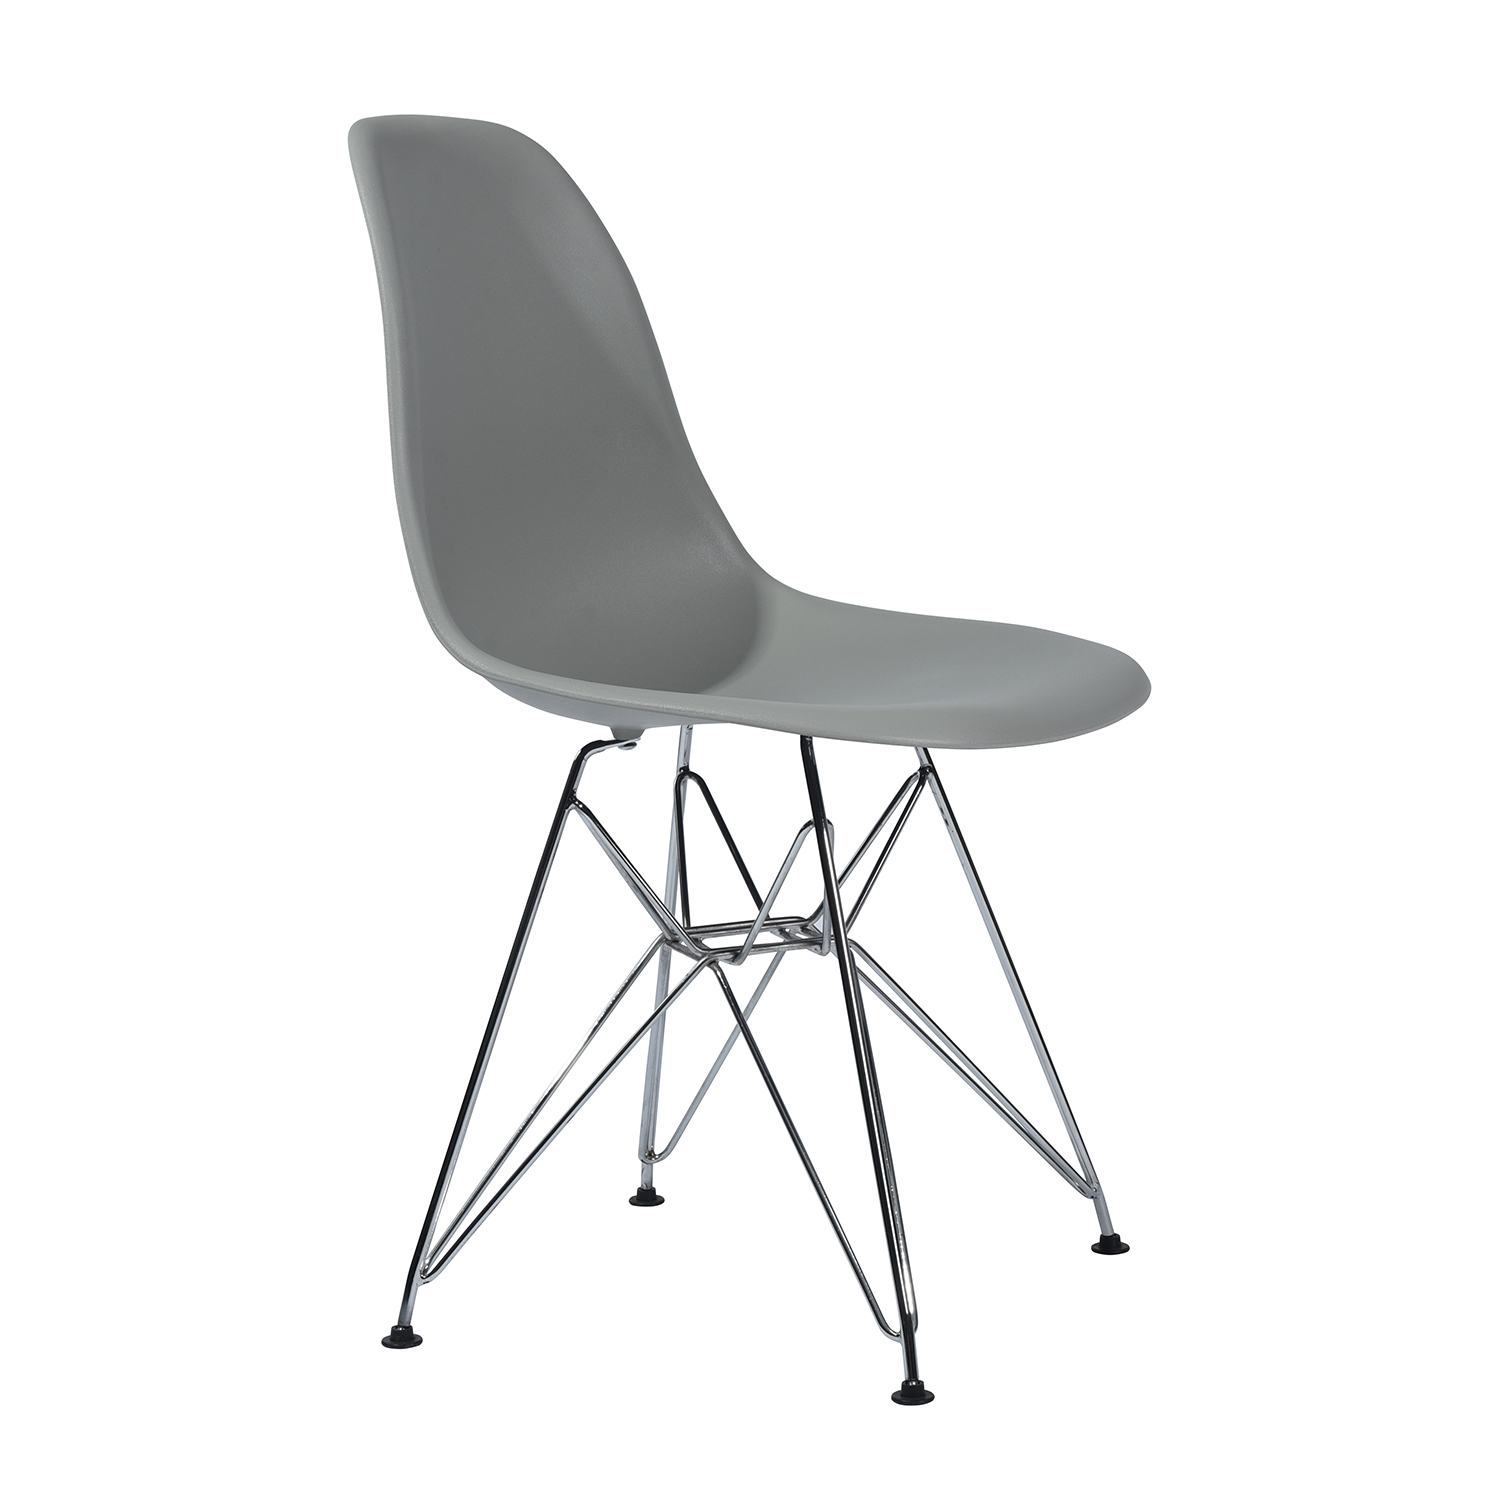 EGGREE Modern Rico Dining Chairs, Kitchen Chair With Metal Feet, Office Room Chair With Solid Frame- Grey